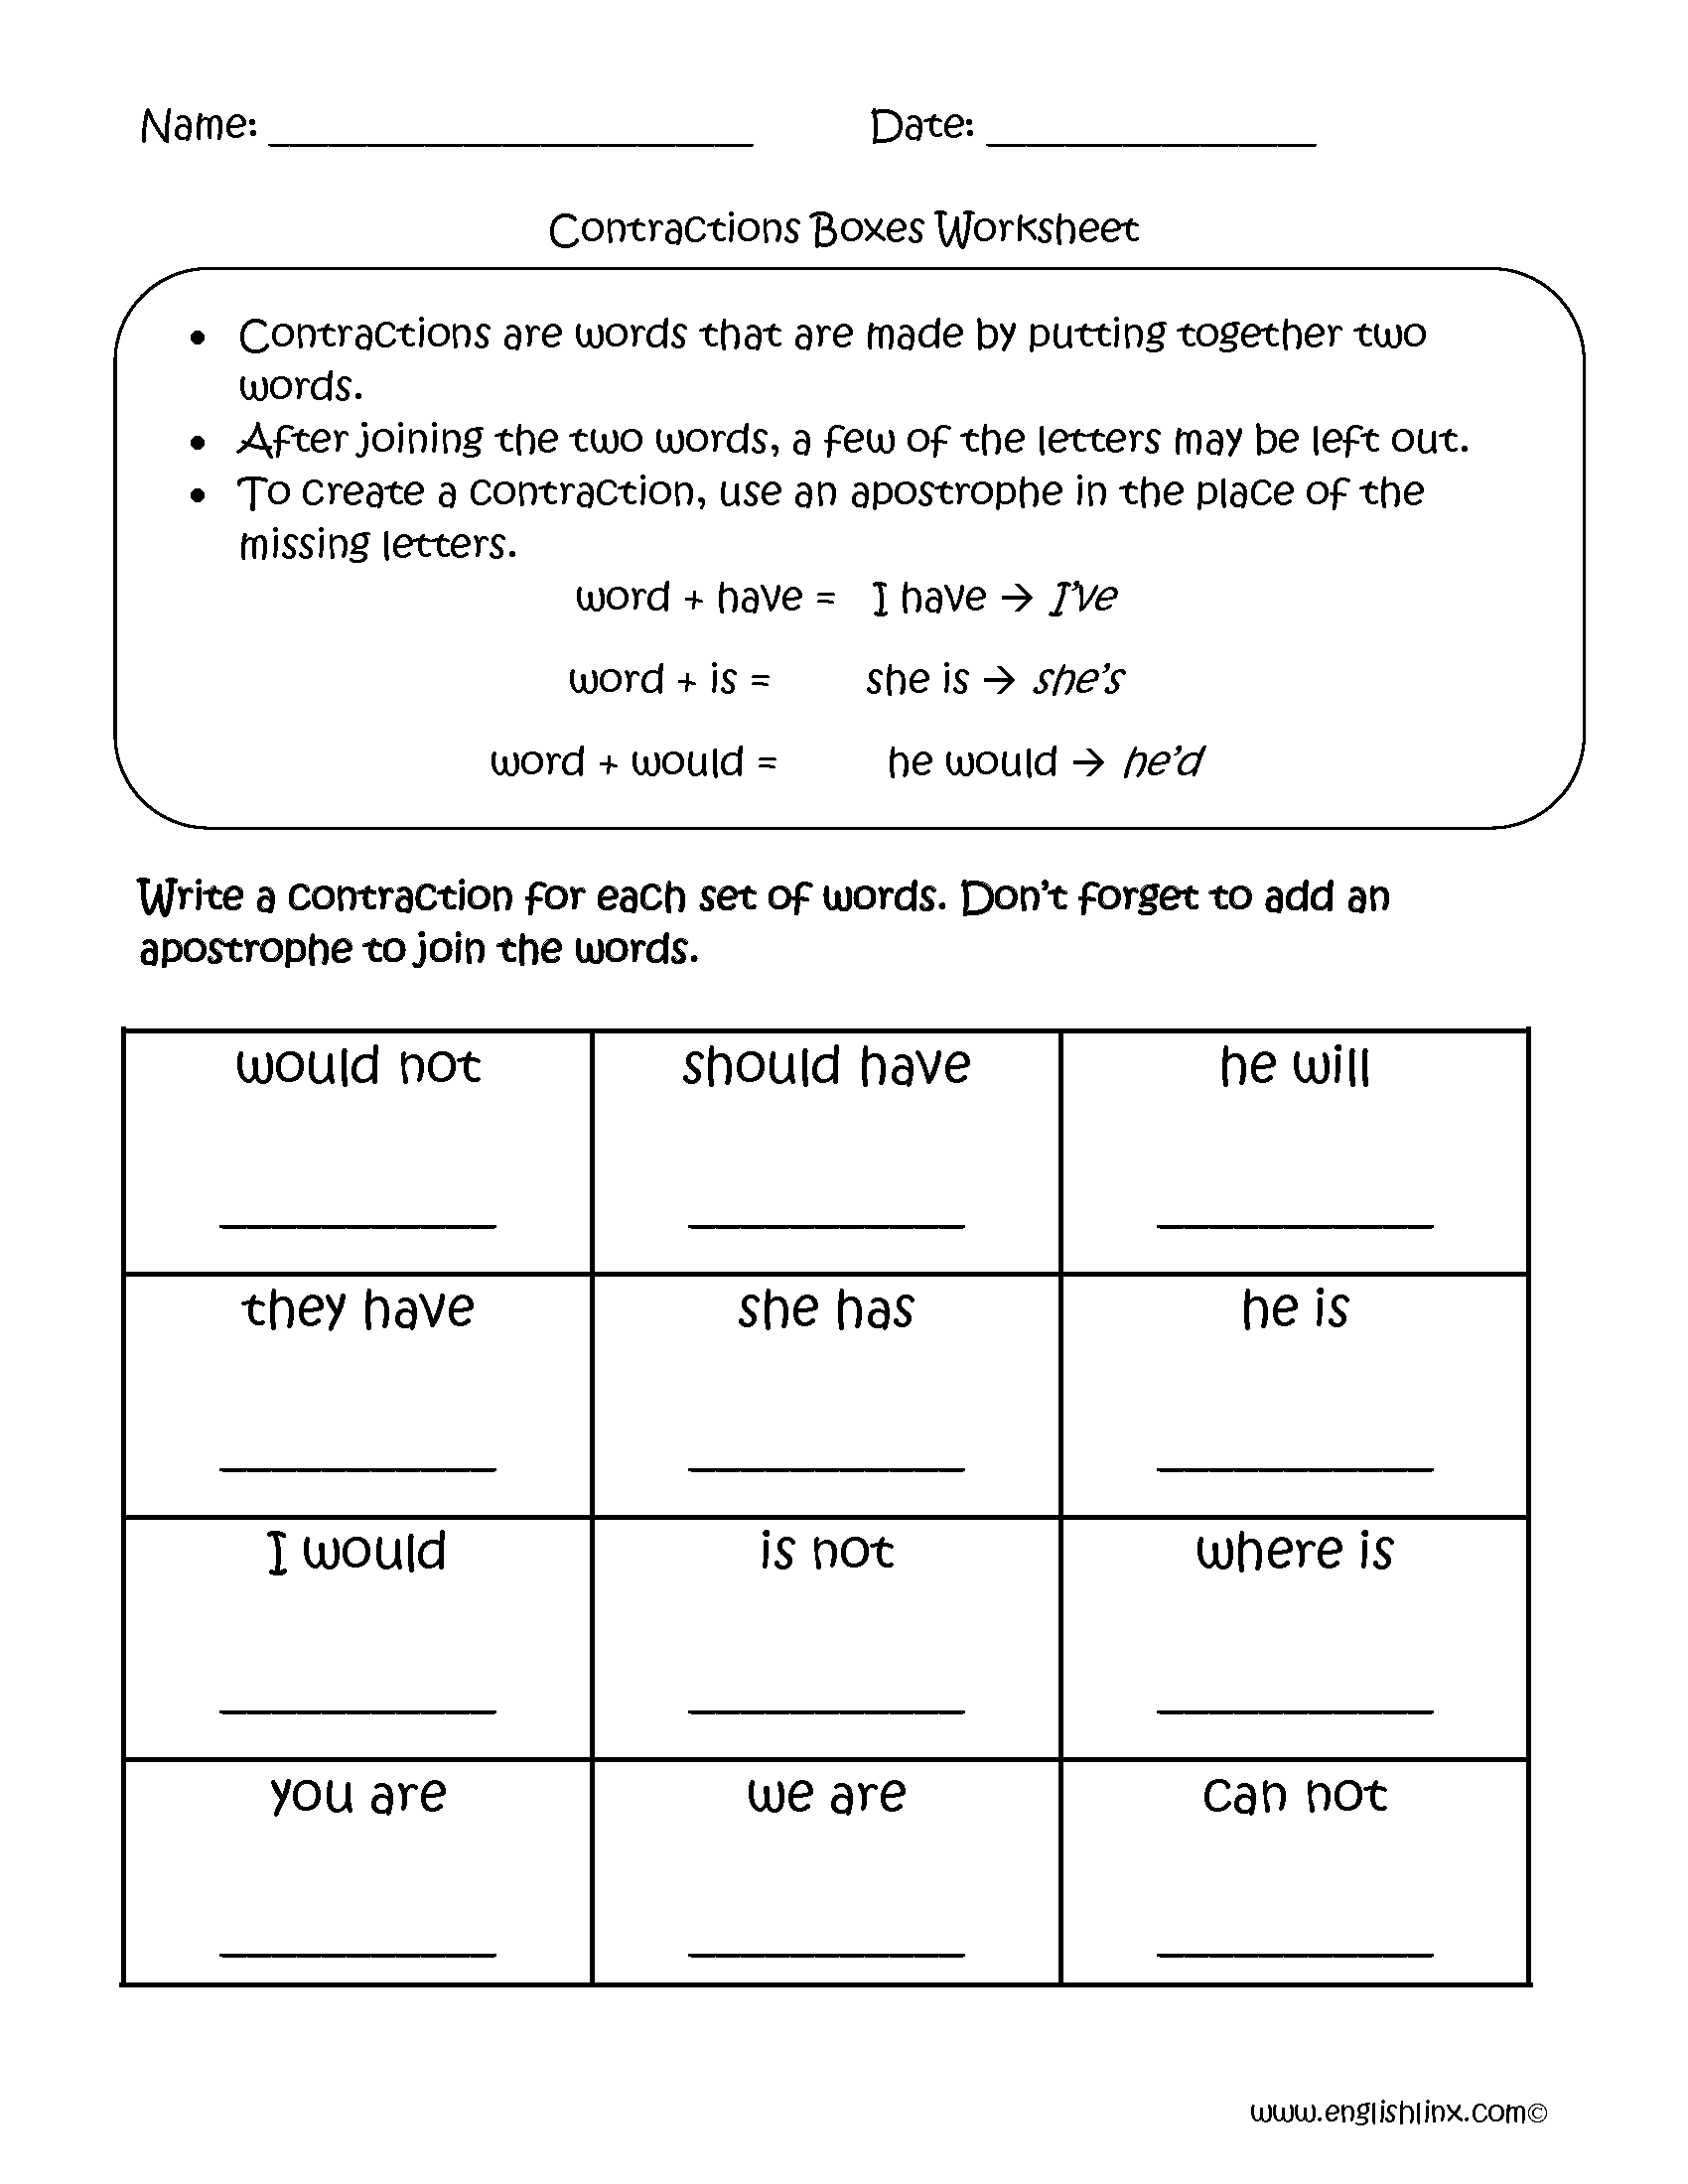 Worksheets Contractions Worksheets englishlinx com contractions worksheets boxes worksheets